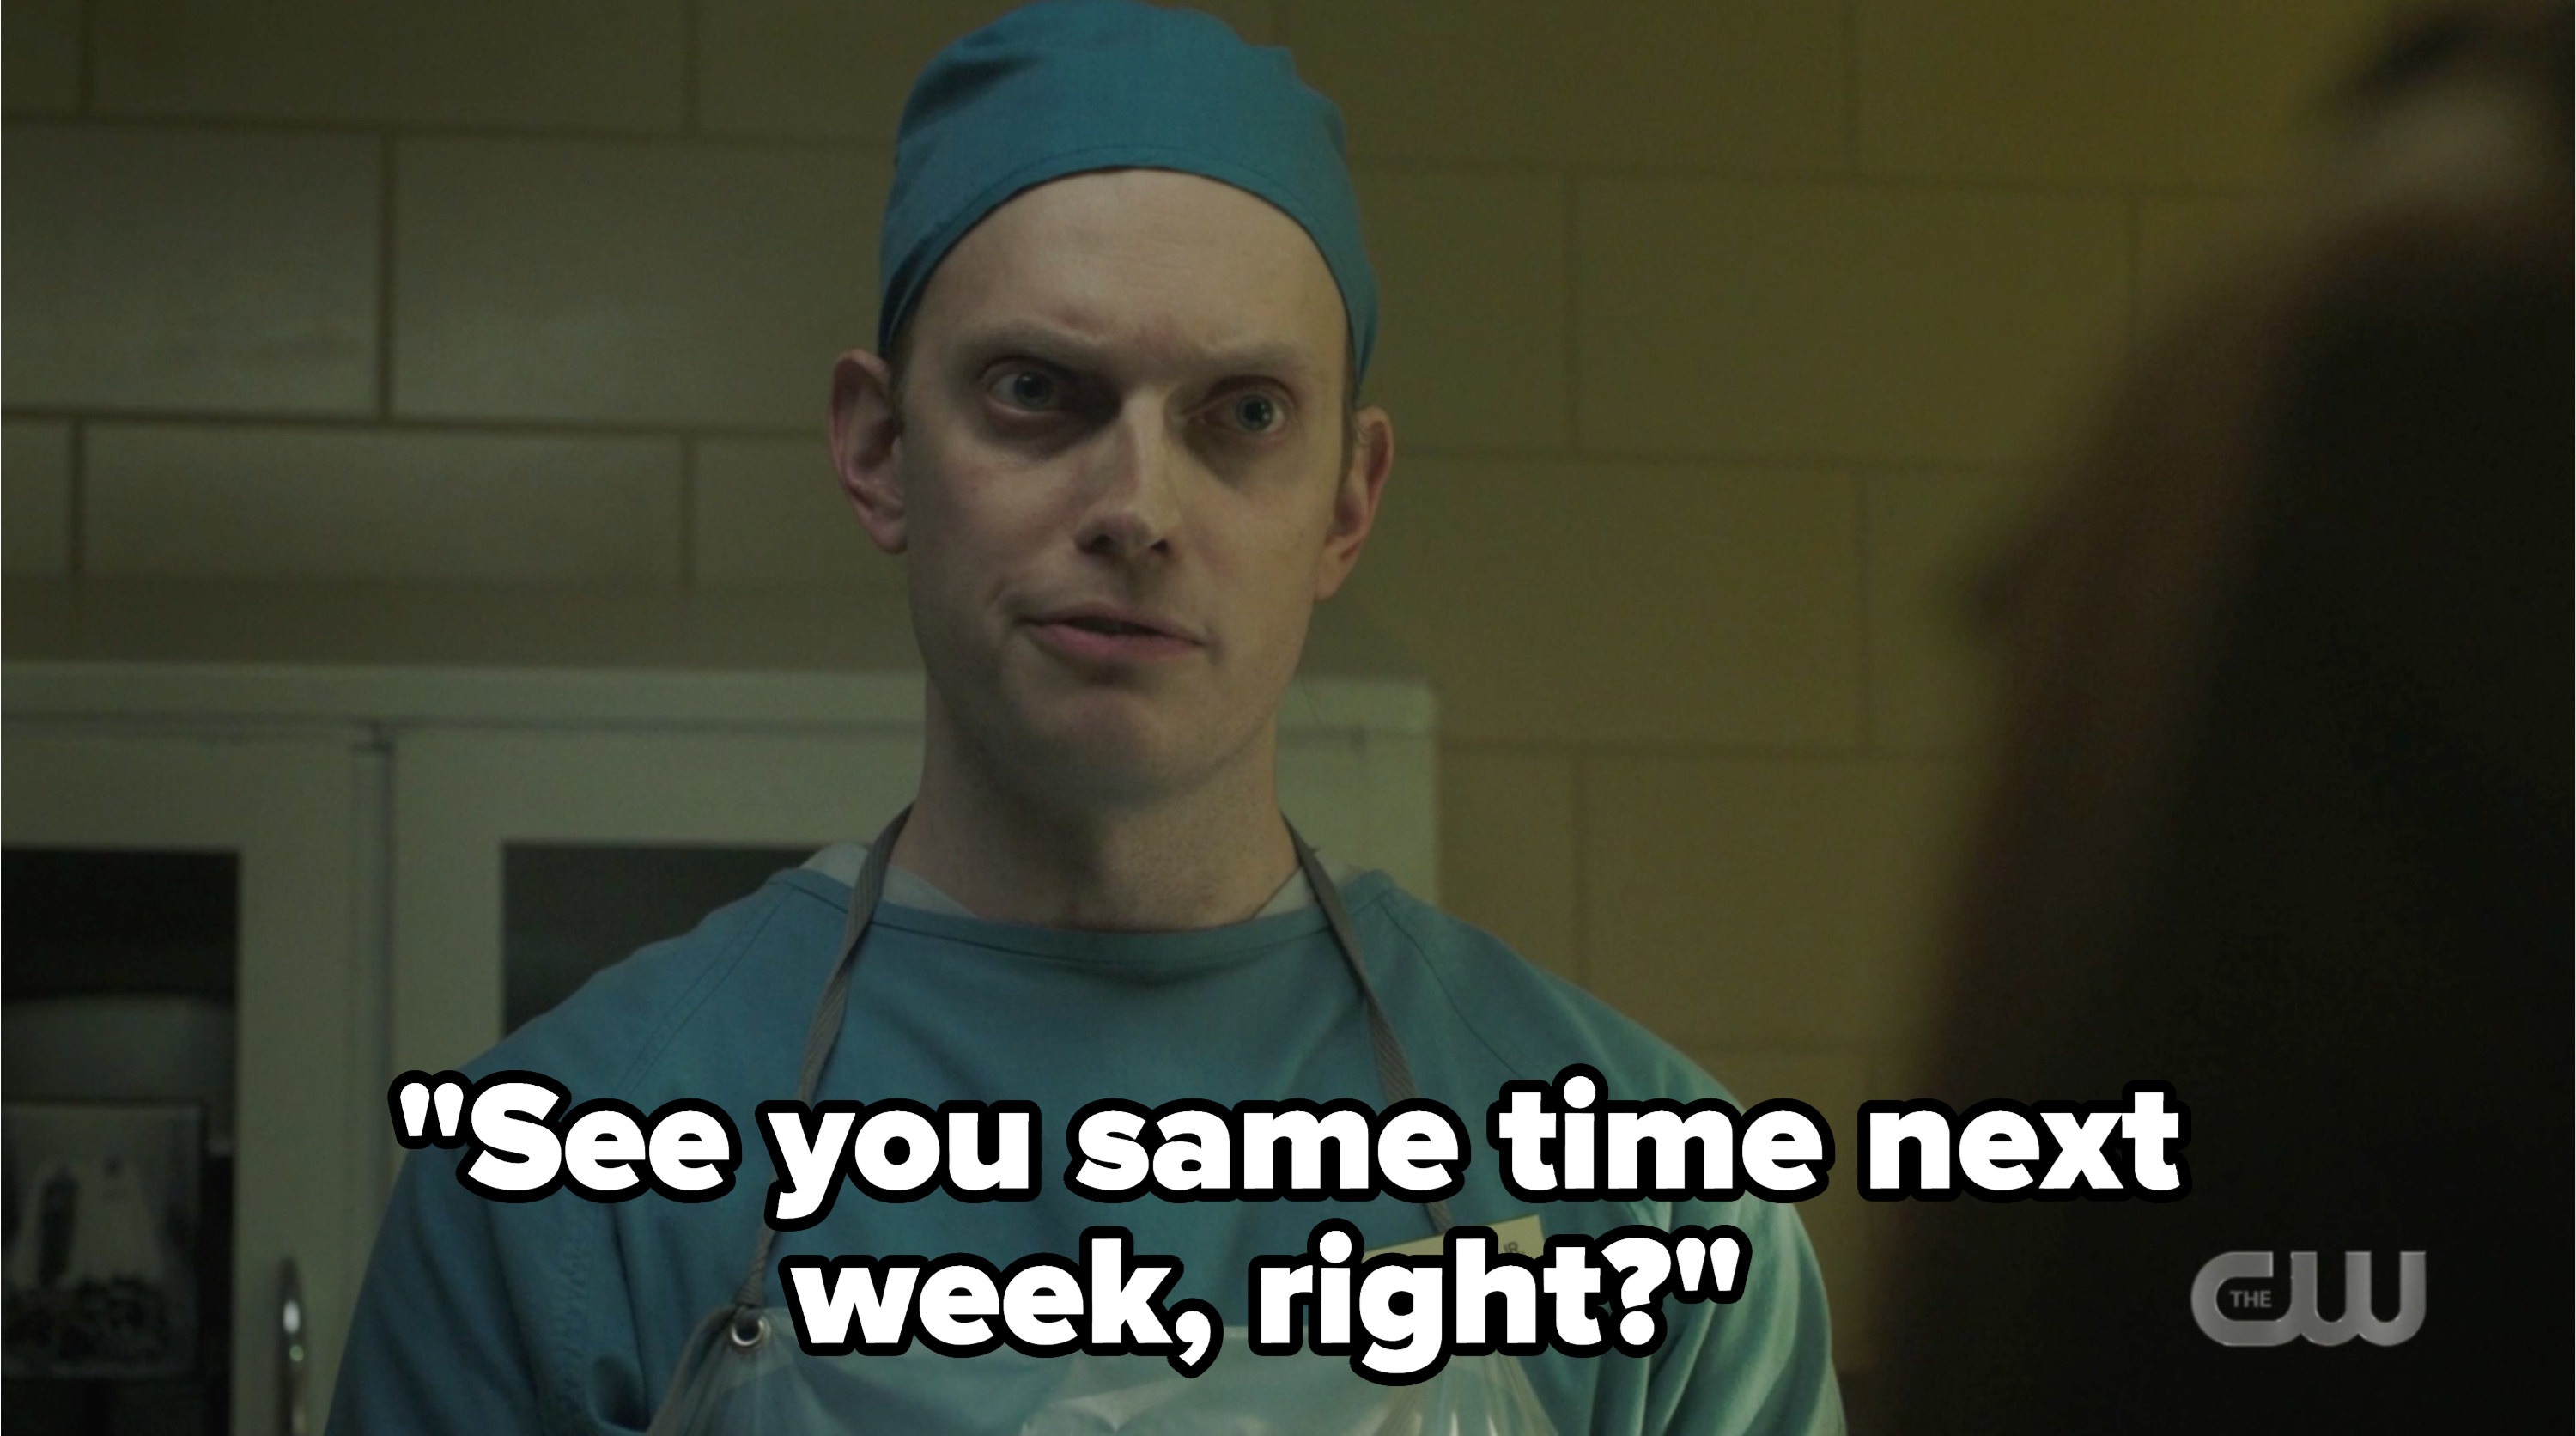 Dr. Curdle Jr. saying see you same time next week, right?